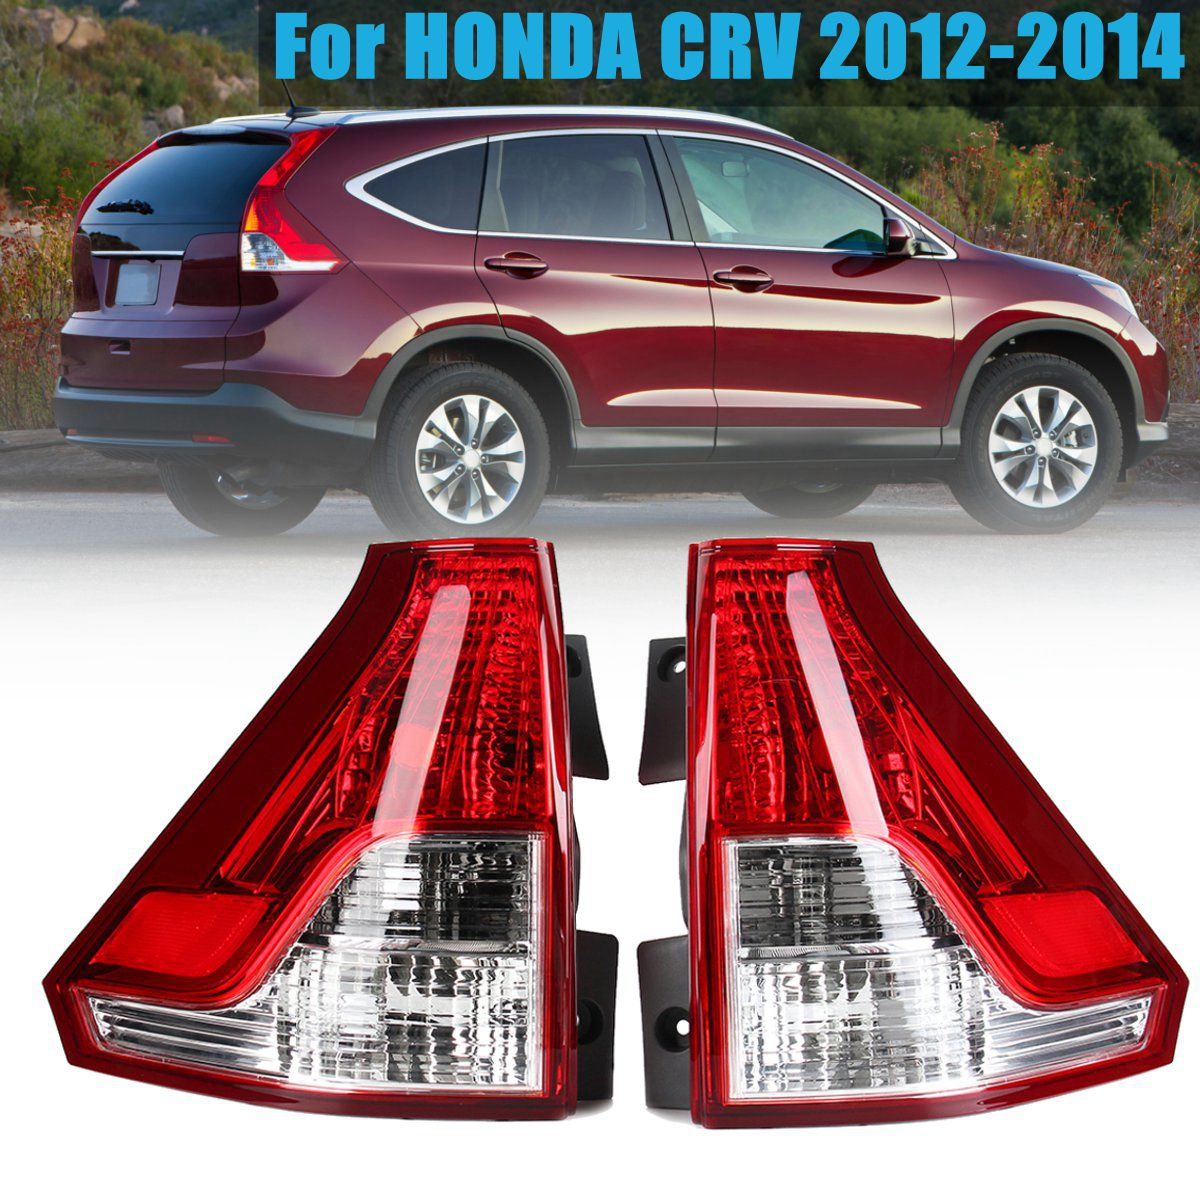 Clear Red Left/Right Tail Rear Bumper Light LED Brake Light Tail Light Lamp for Honda CRV 2012 2013 2014 цена